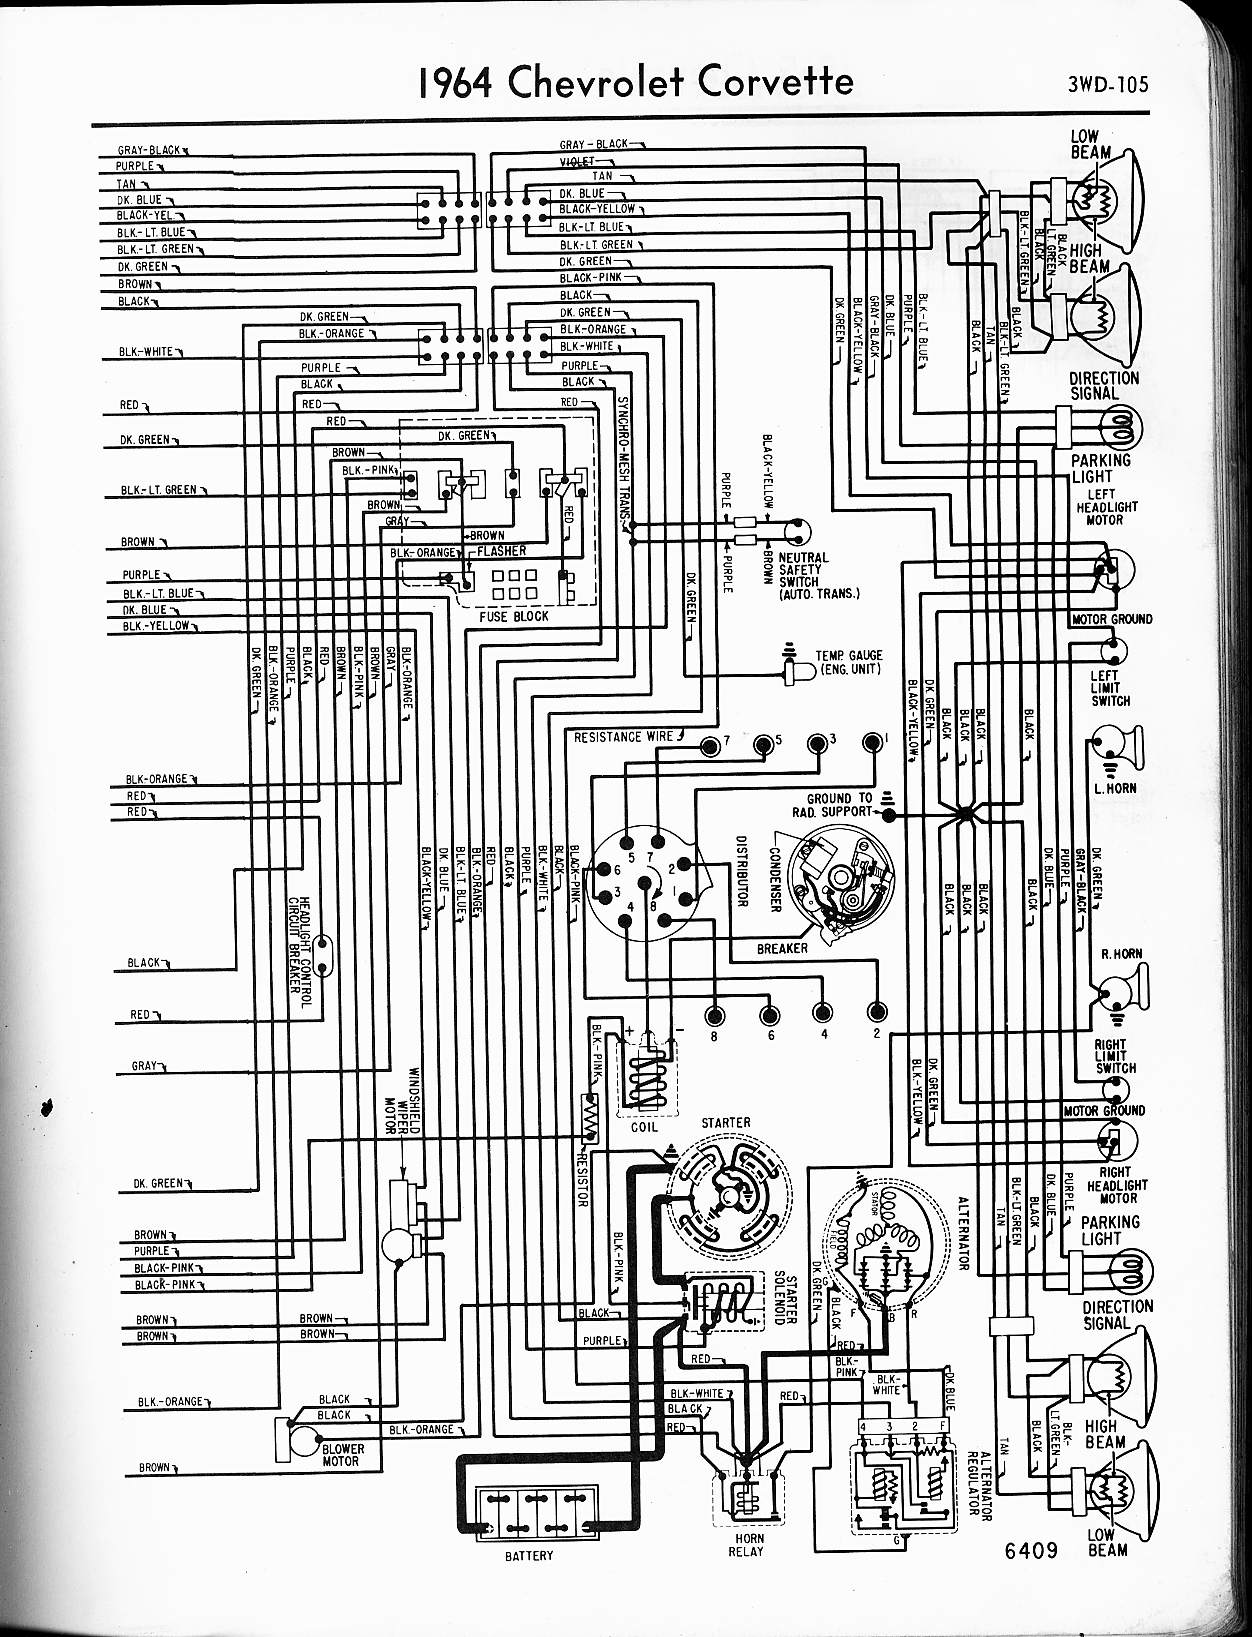 1969 chevy corvette wiring diagram wiring library 1979 chevy camaro wiring diagram 62 chevy corvette wiring diagram expert schematics diagram rh atcobennettrecoveries com 1980 corvette battery wiring diagram